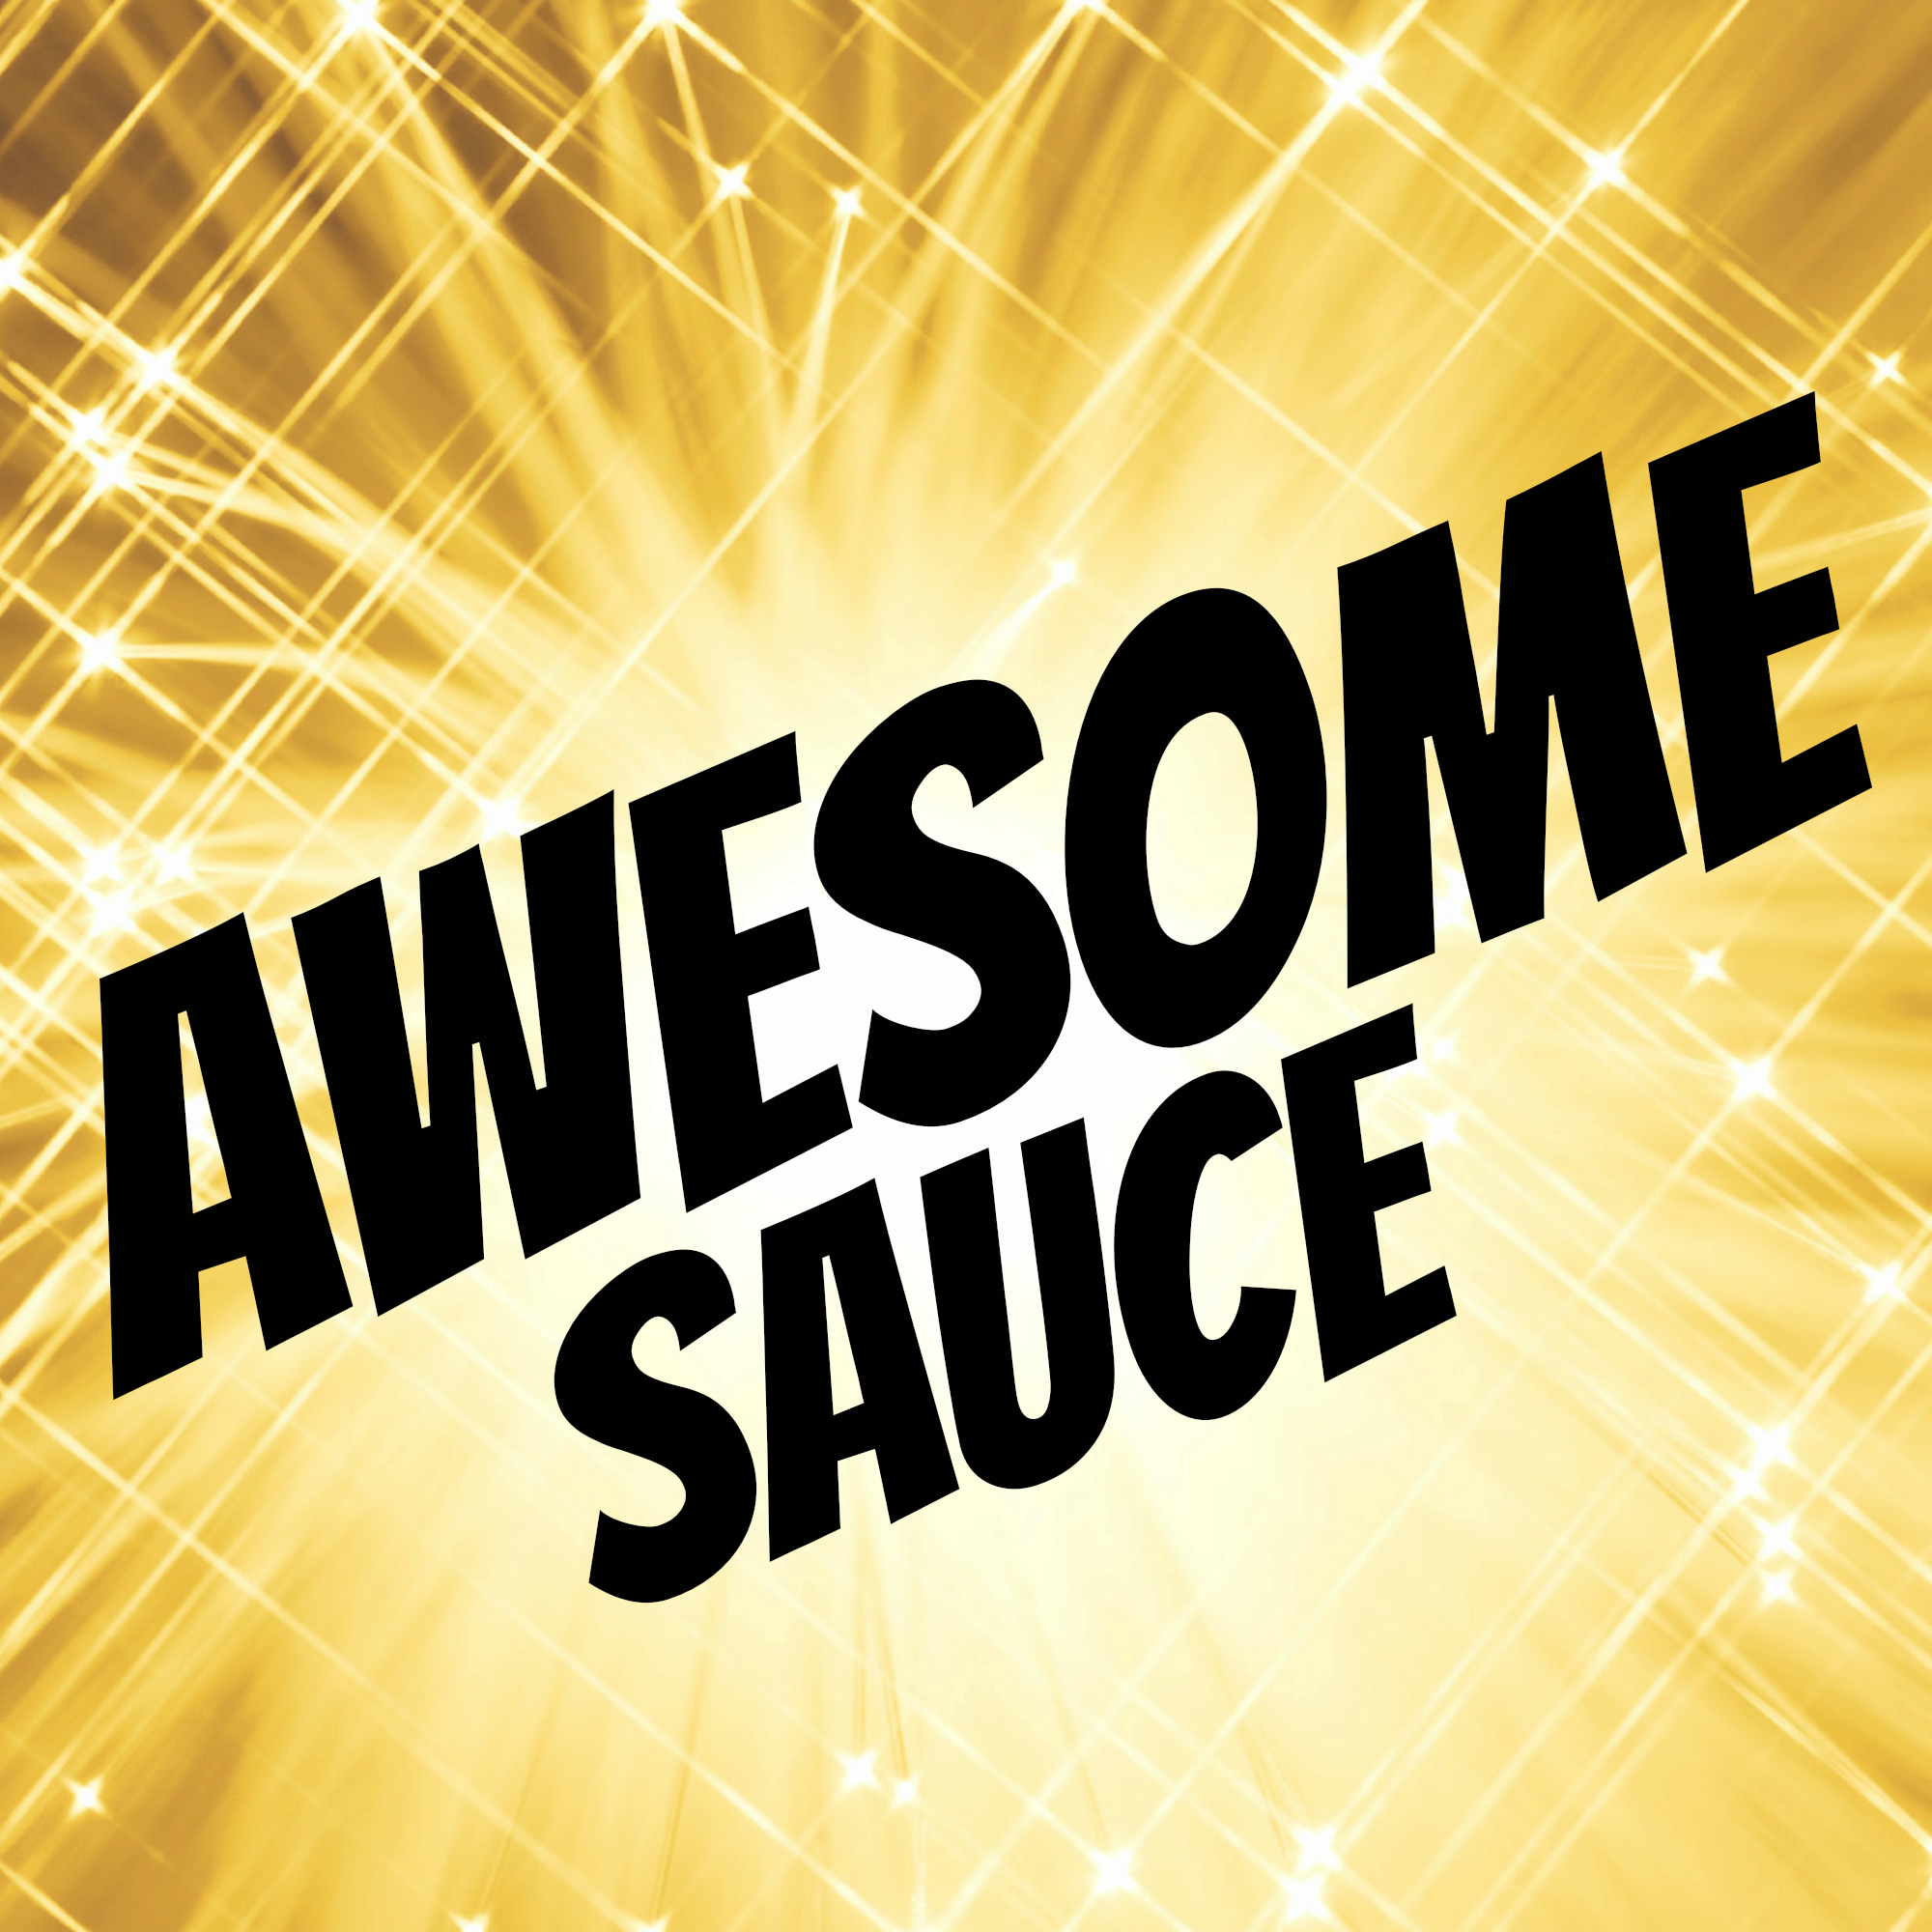 Awesome Sauce: A Recipe